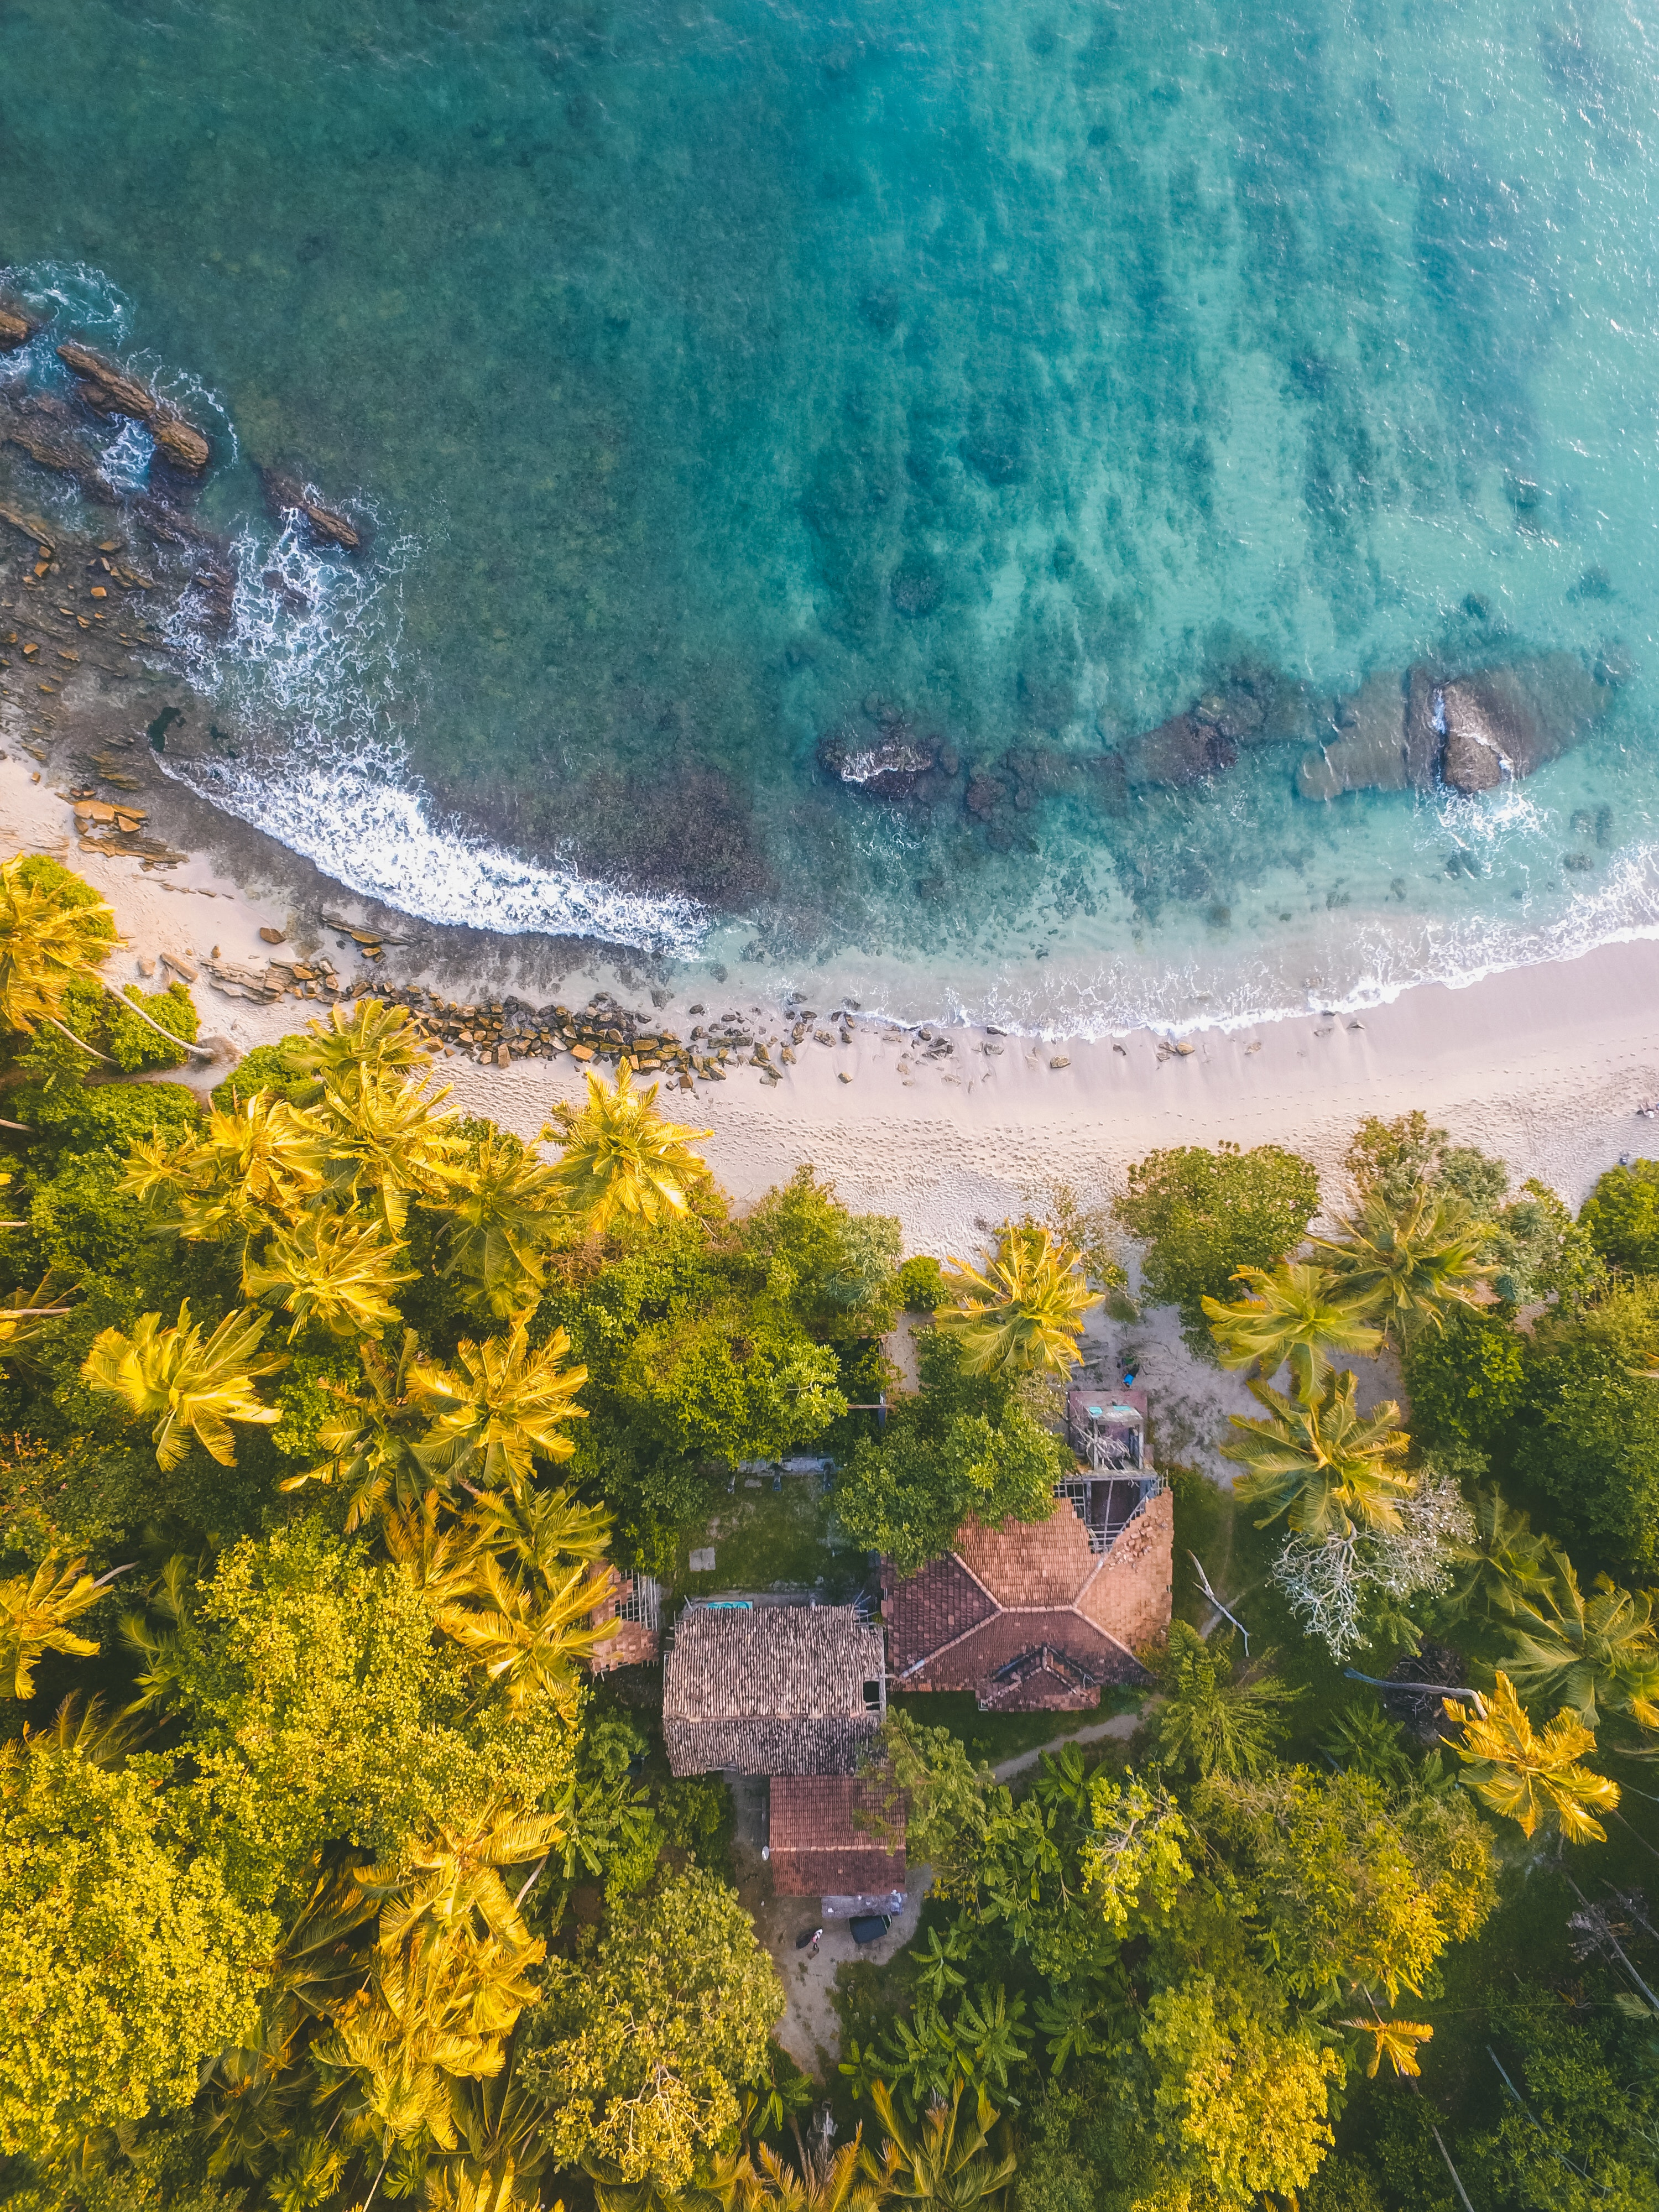 Birds eye view of beach front house on ocean